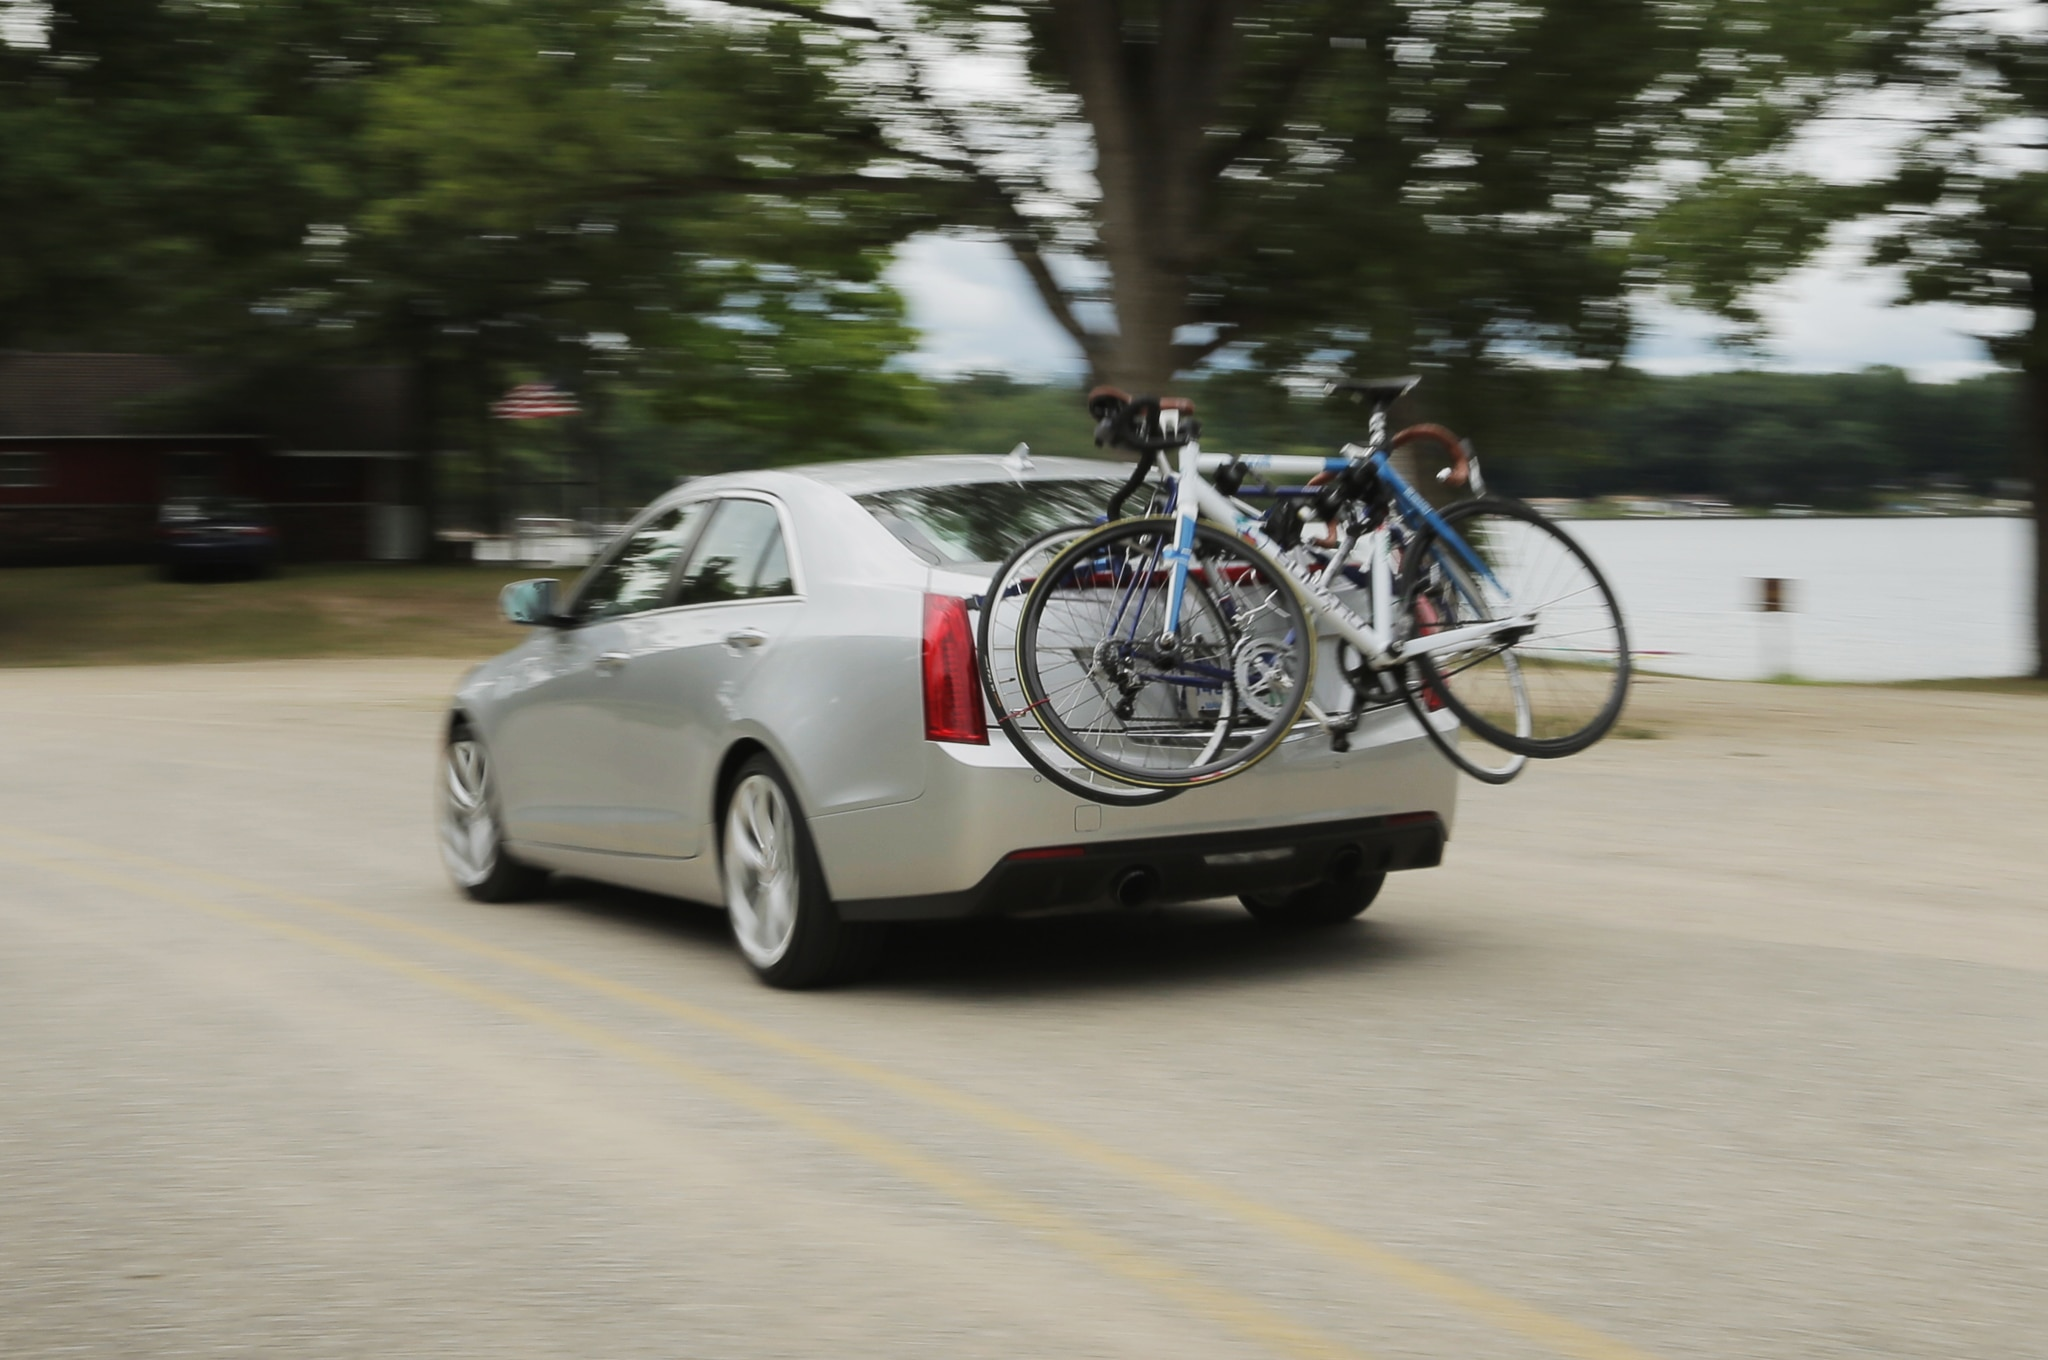 2013 Cadillac Ats Rear Three Quarter Motion Bike Rack1